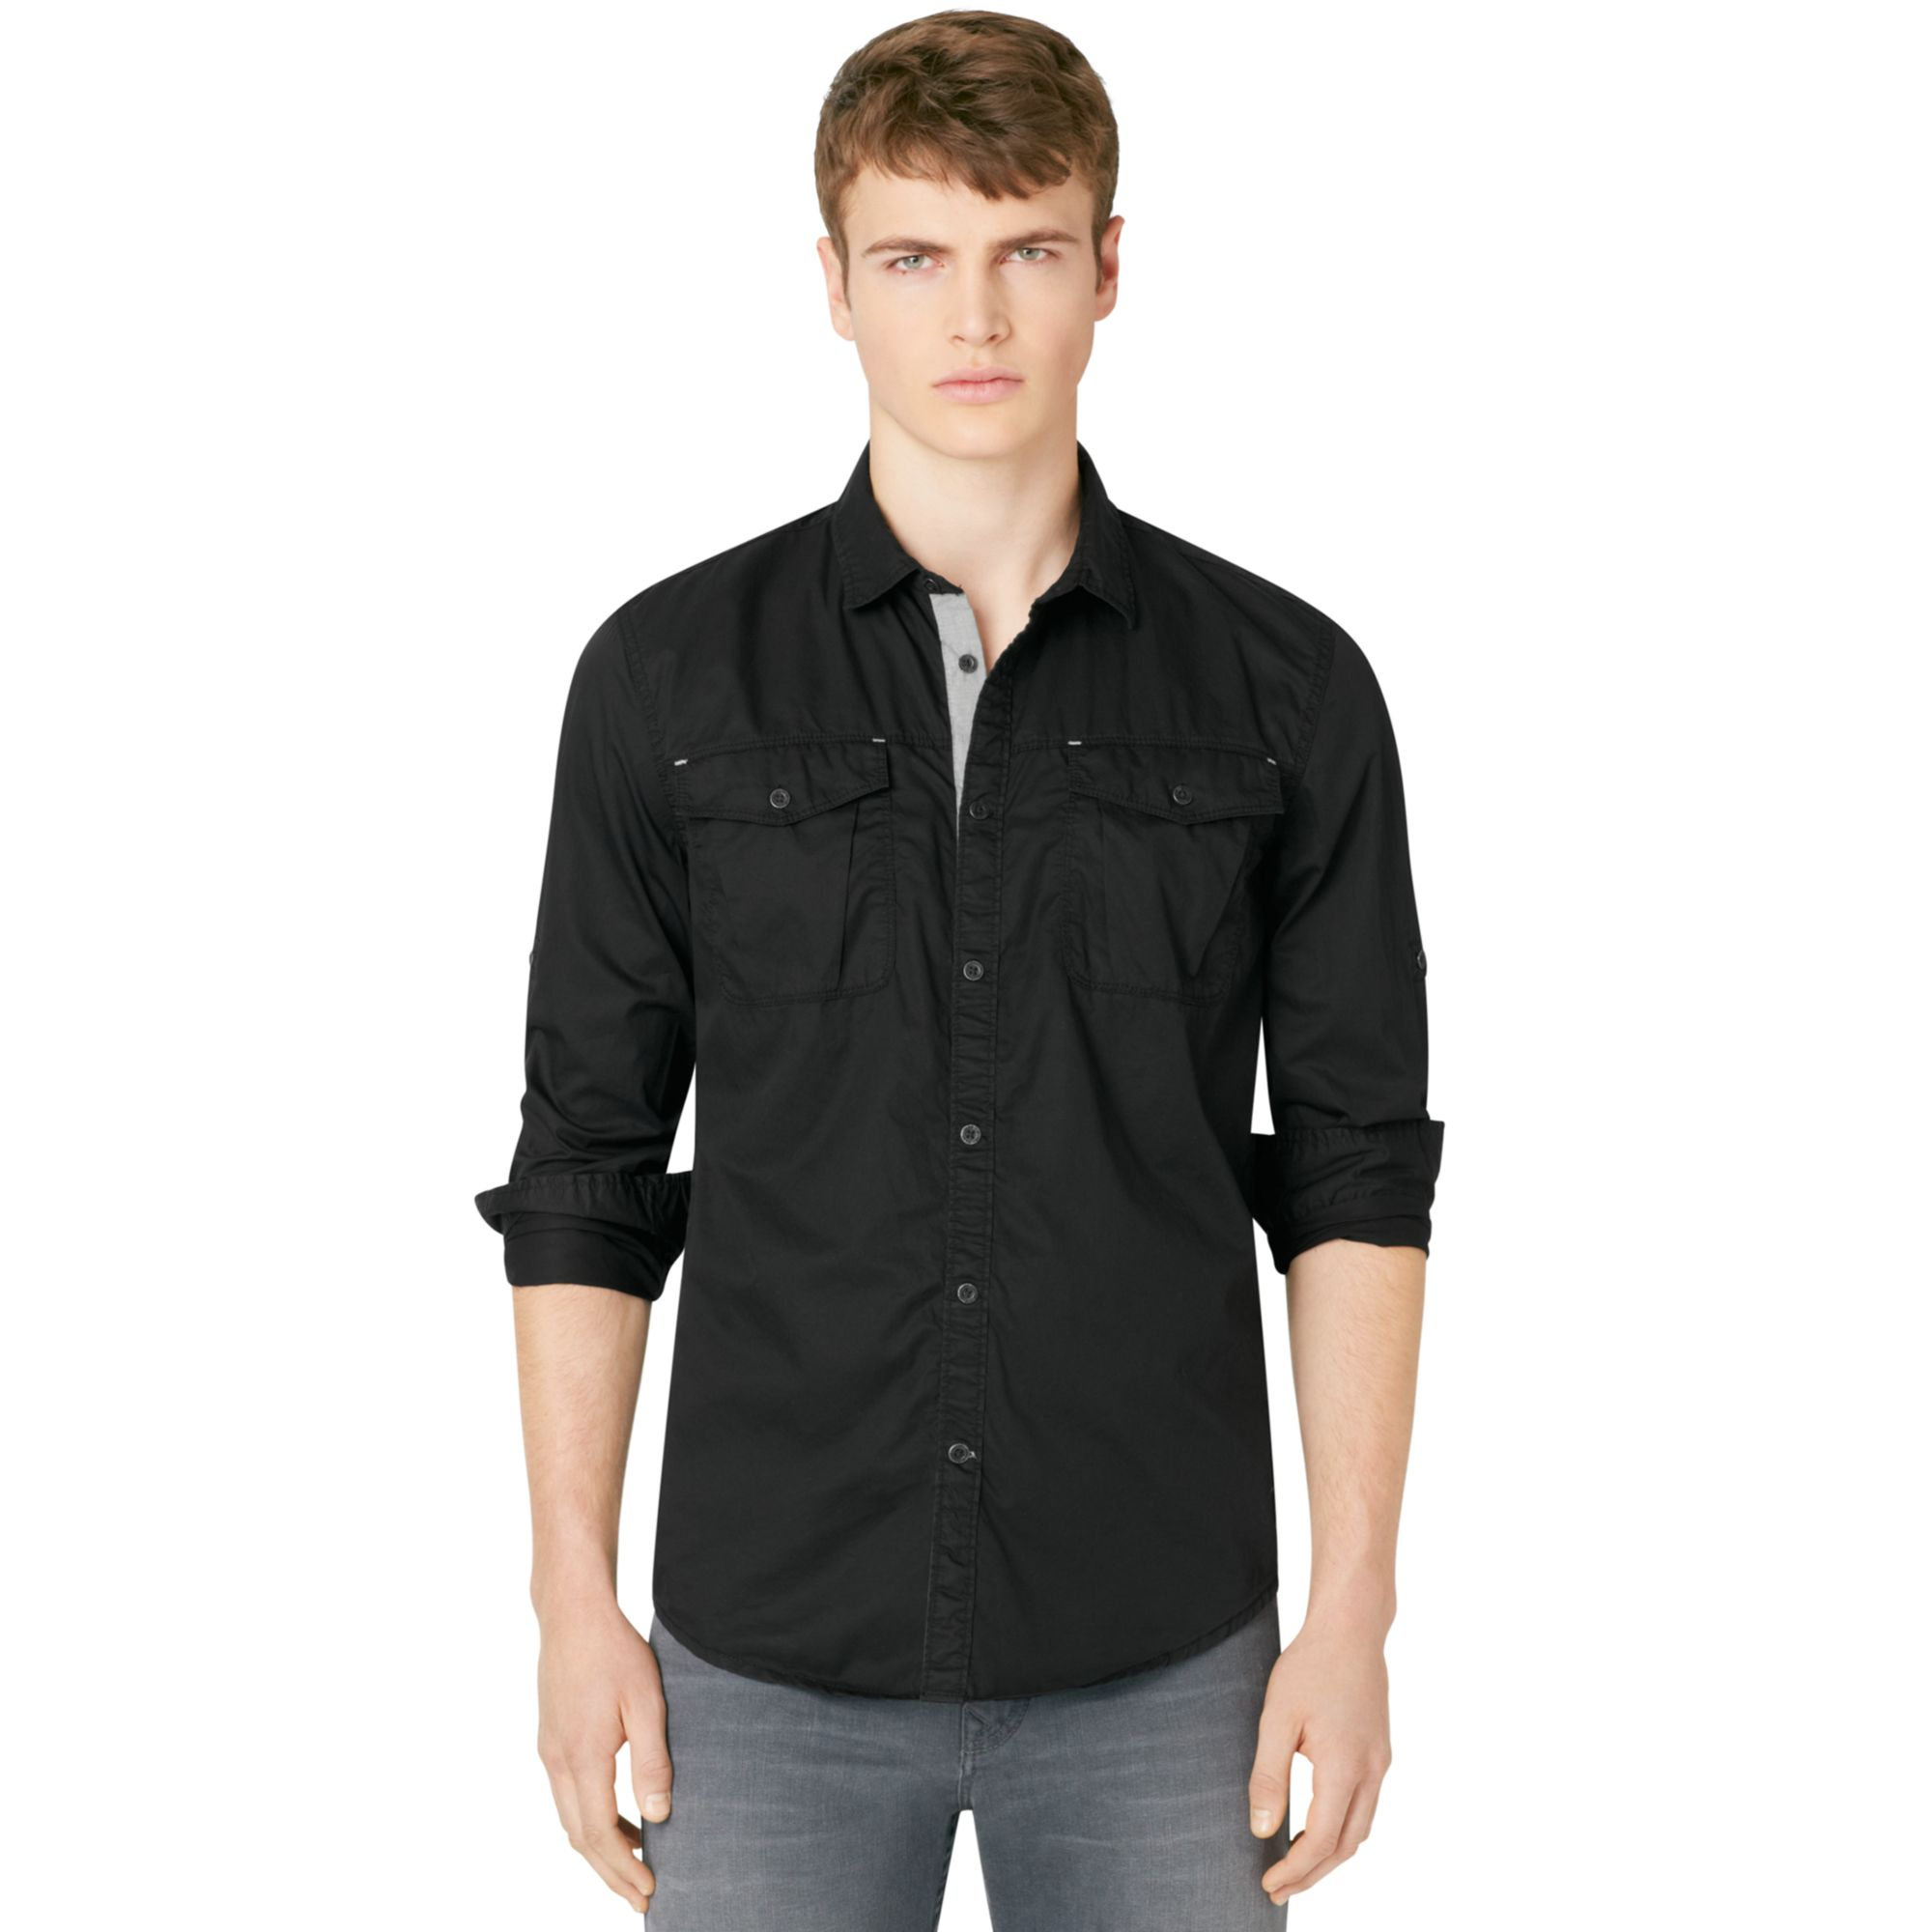 black button down shirt with jeans artee shirt